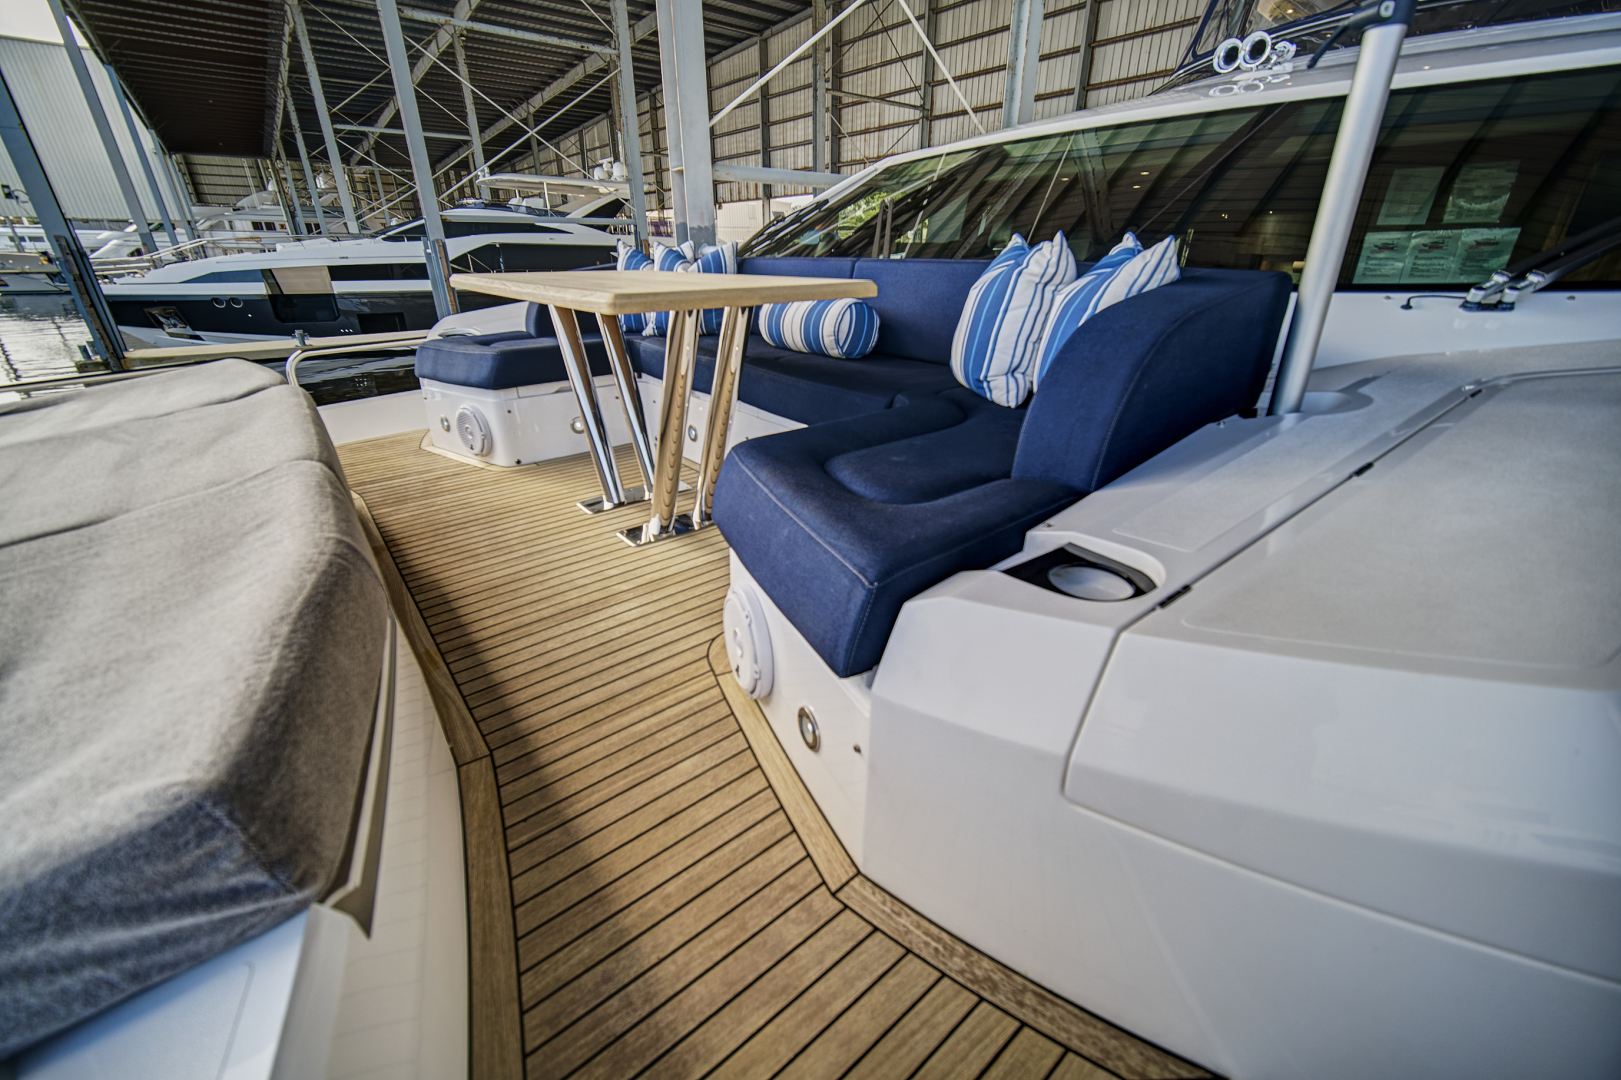 Sunseeker-86 Yacht 2019-Its Noon Somewhere Fort Lauderdale-Florida-United States-1556667 | Thumbnail